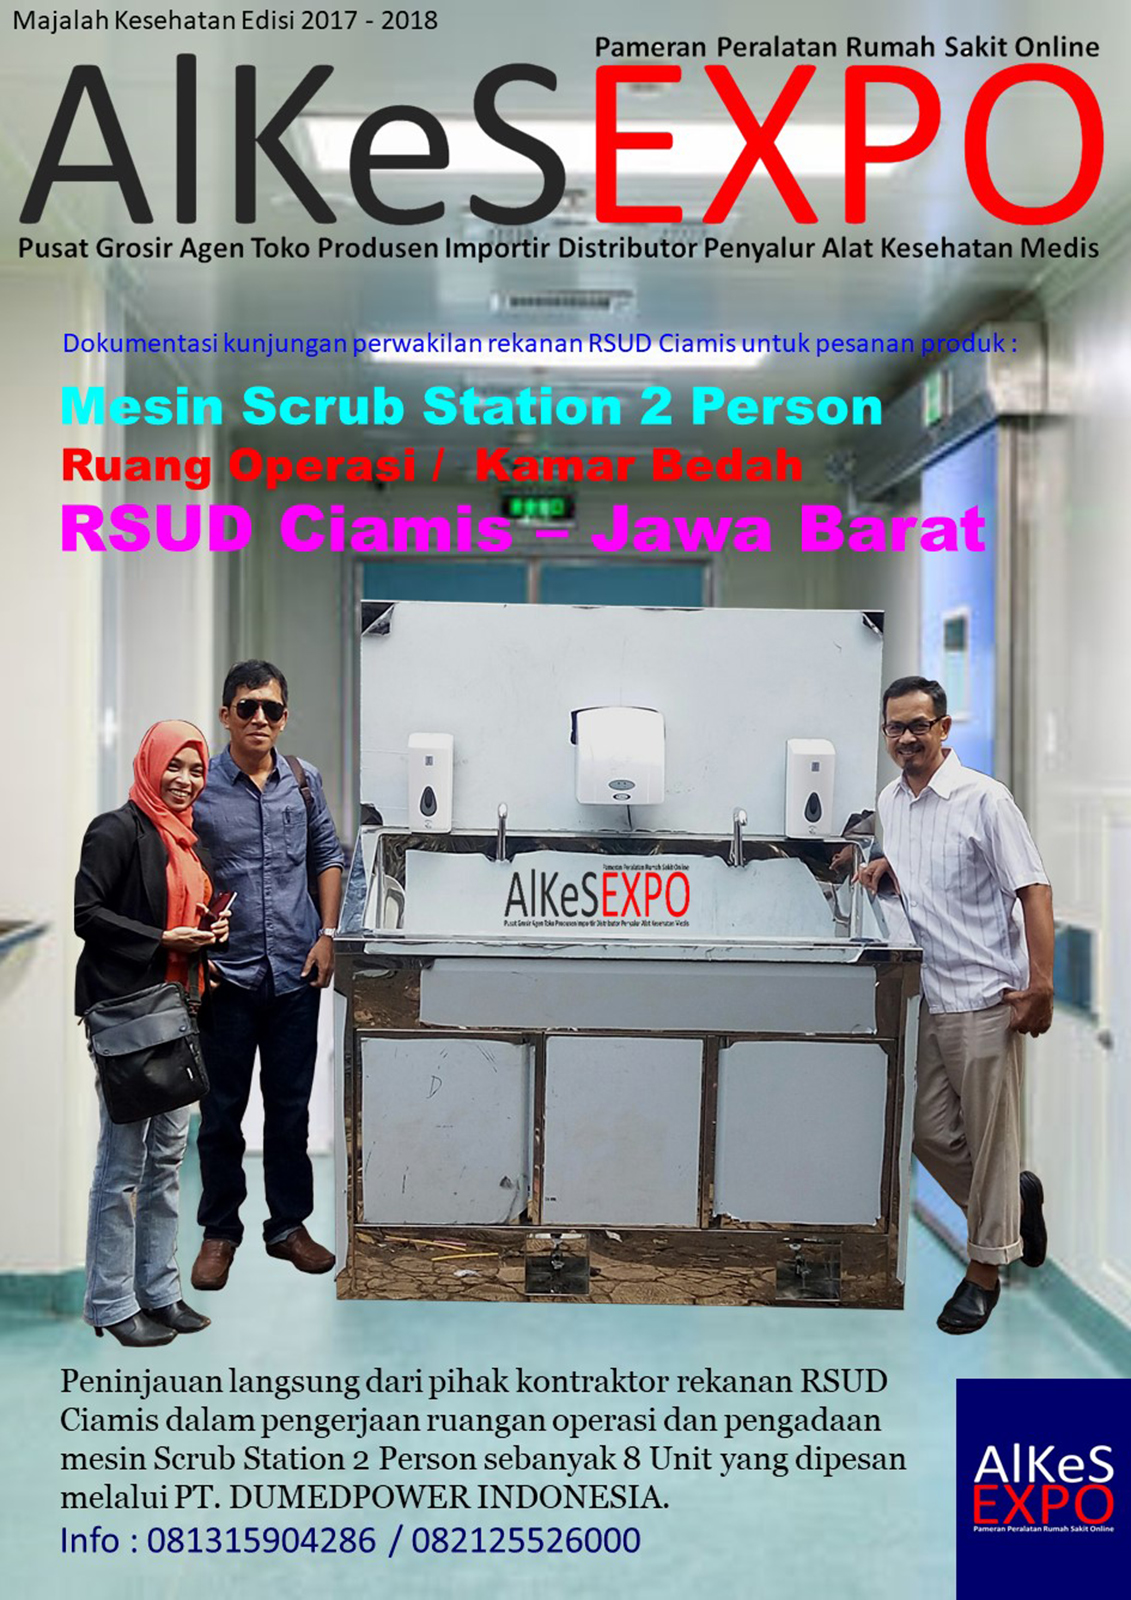 Scrub Station 2 Person Automatic Manual - RSUD Ciamis Jawa Barat 8 Unit Desember 2017